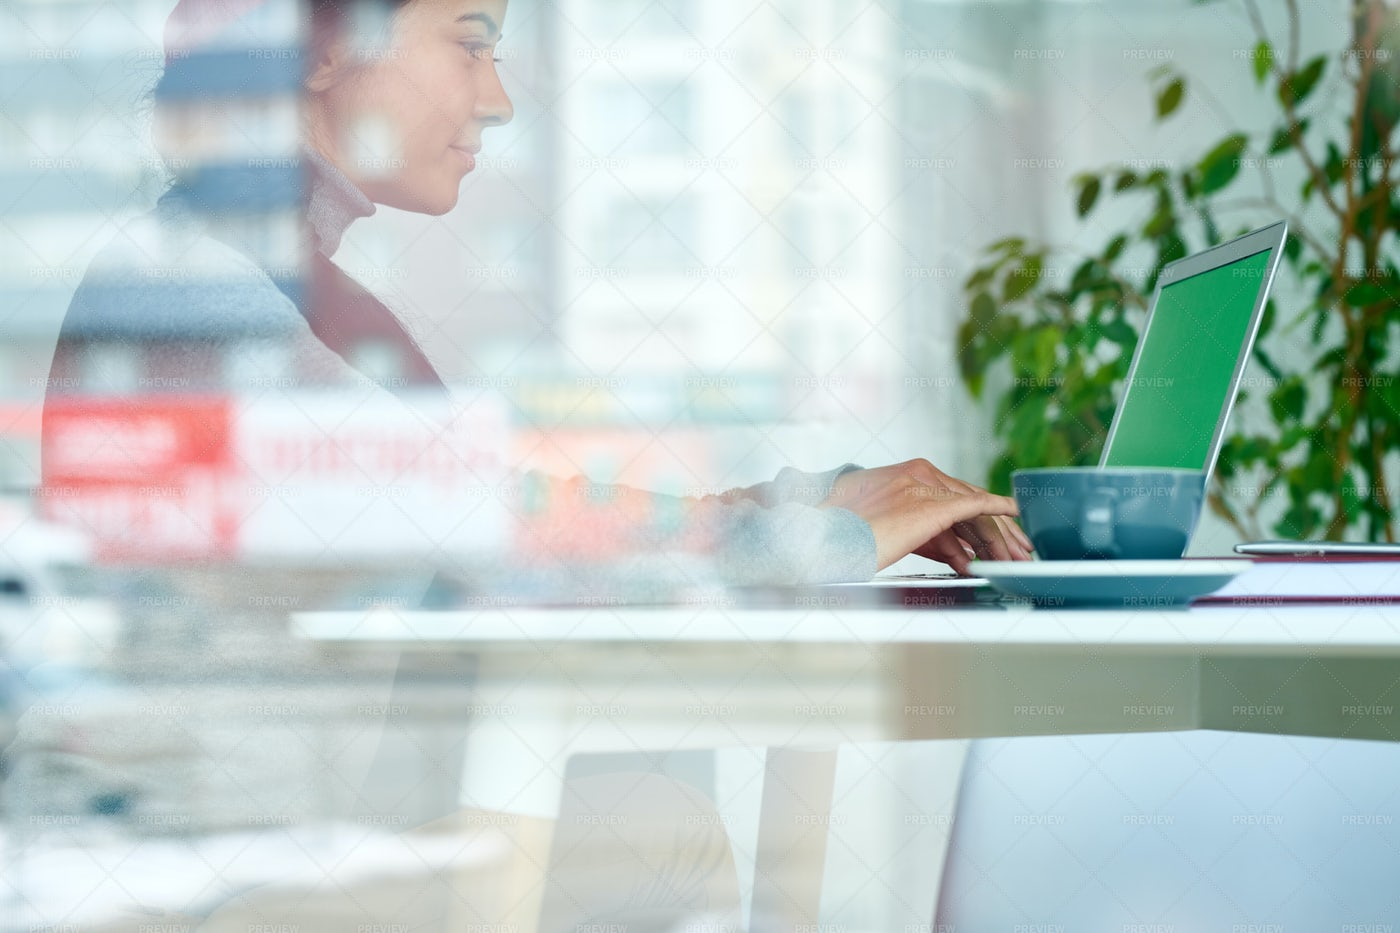 Pretty Woman Working Behind Glass...: Stock Photos